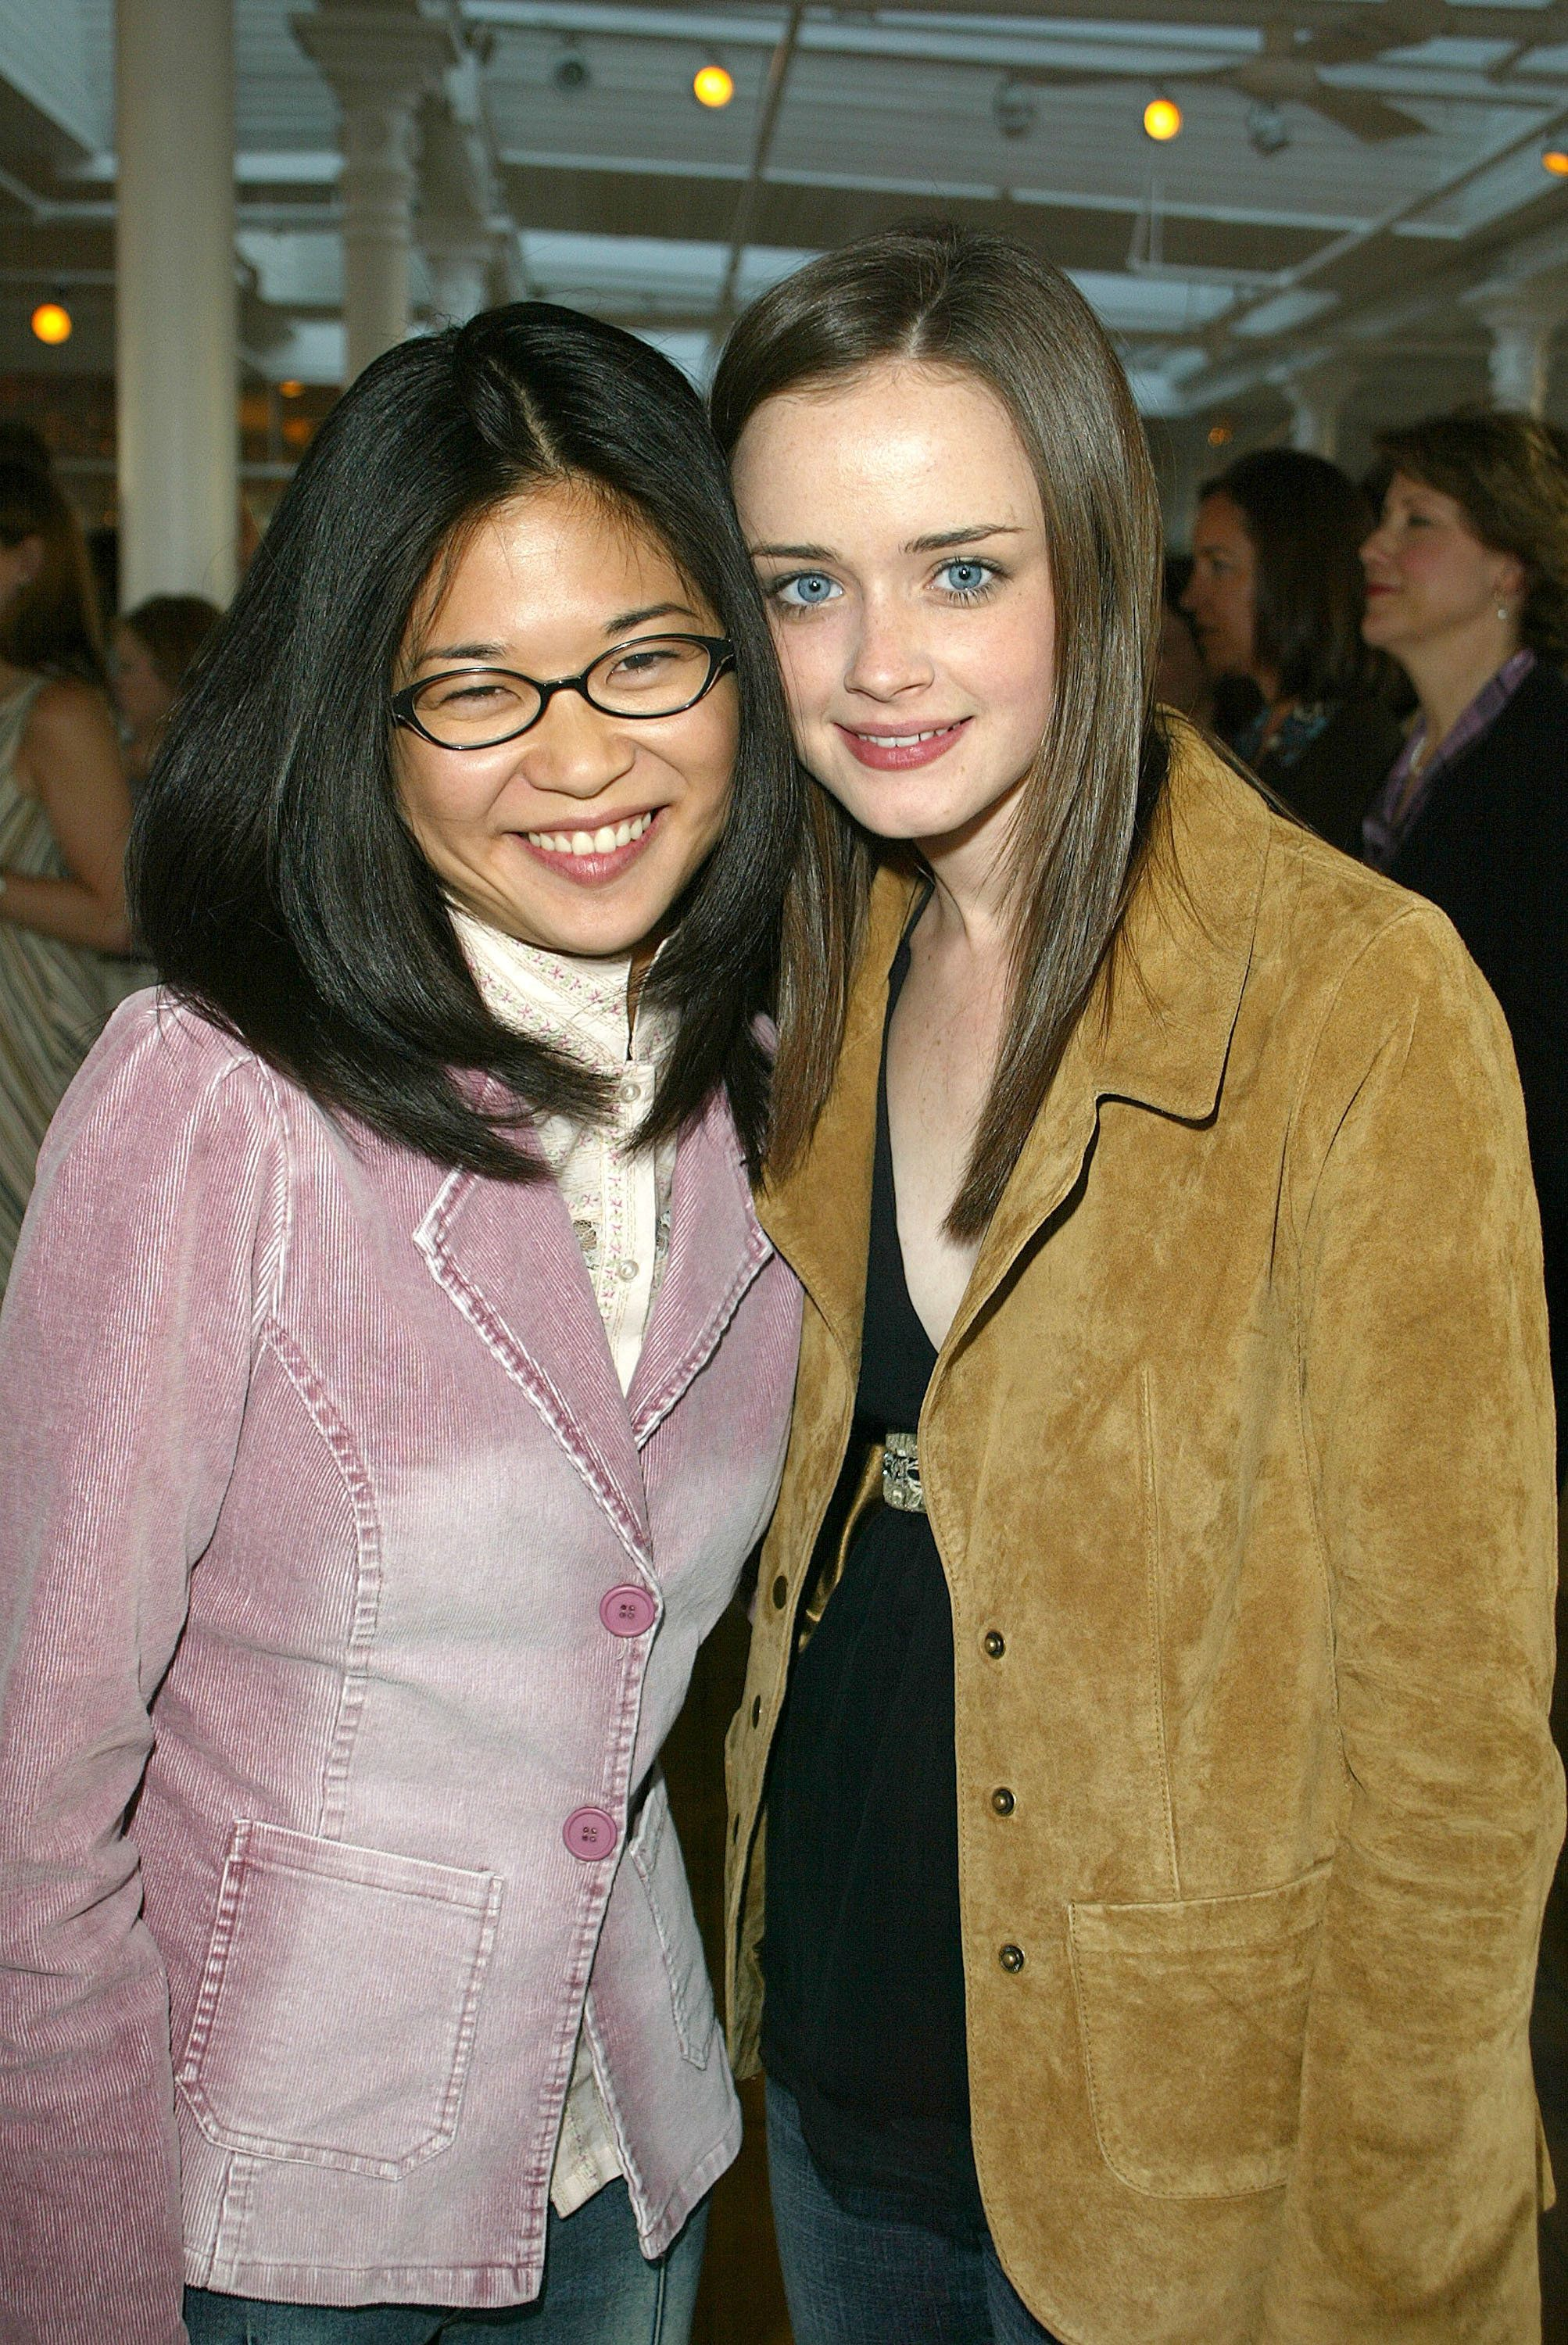 Keiko Agena and actress Alexis Bledel attend aWB Casting Call in 2002. (Photo by Jimi Celeste/Getty